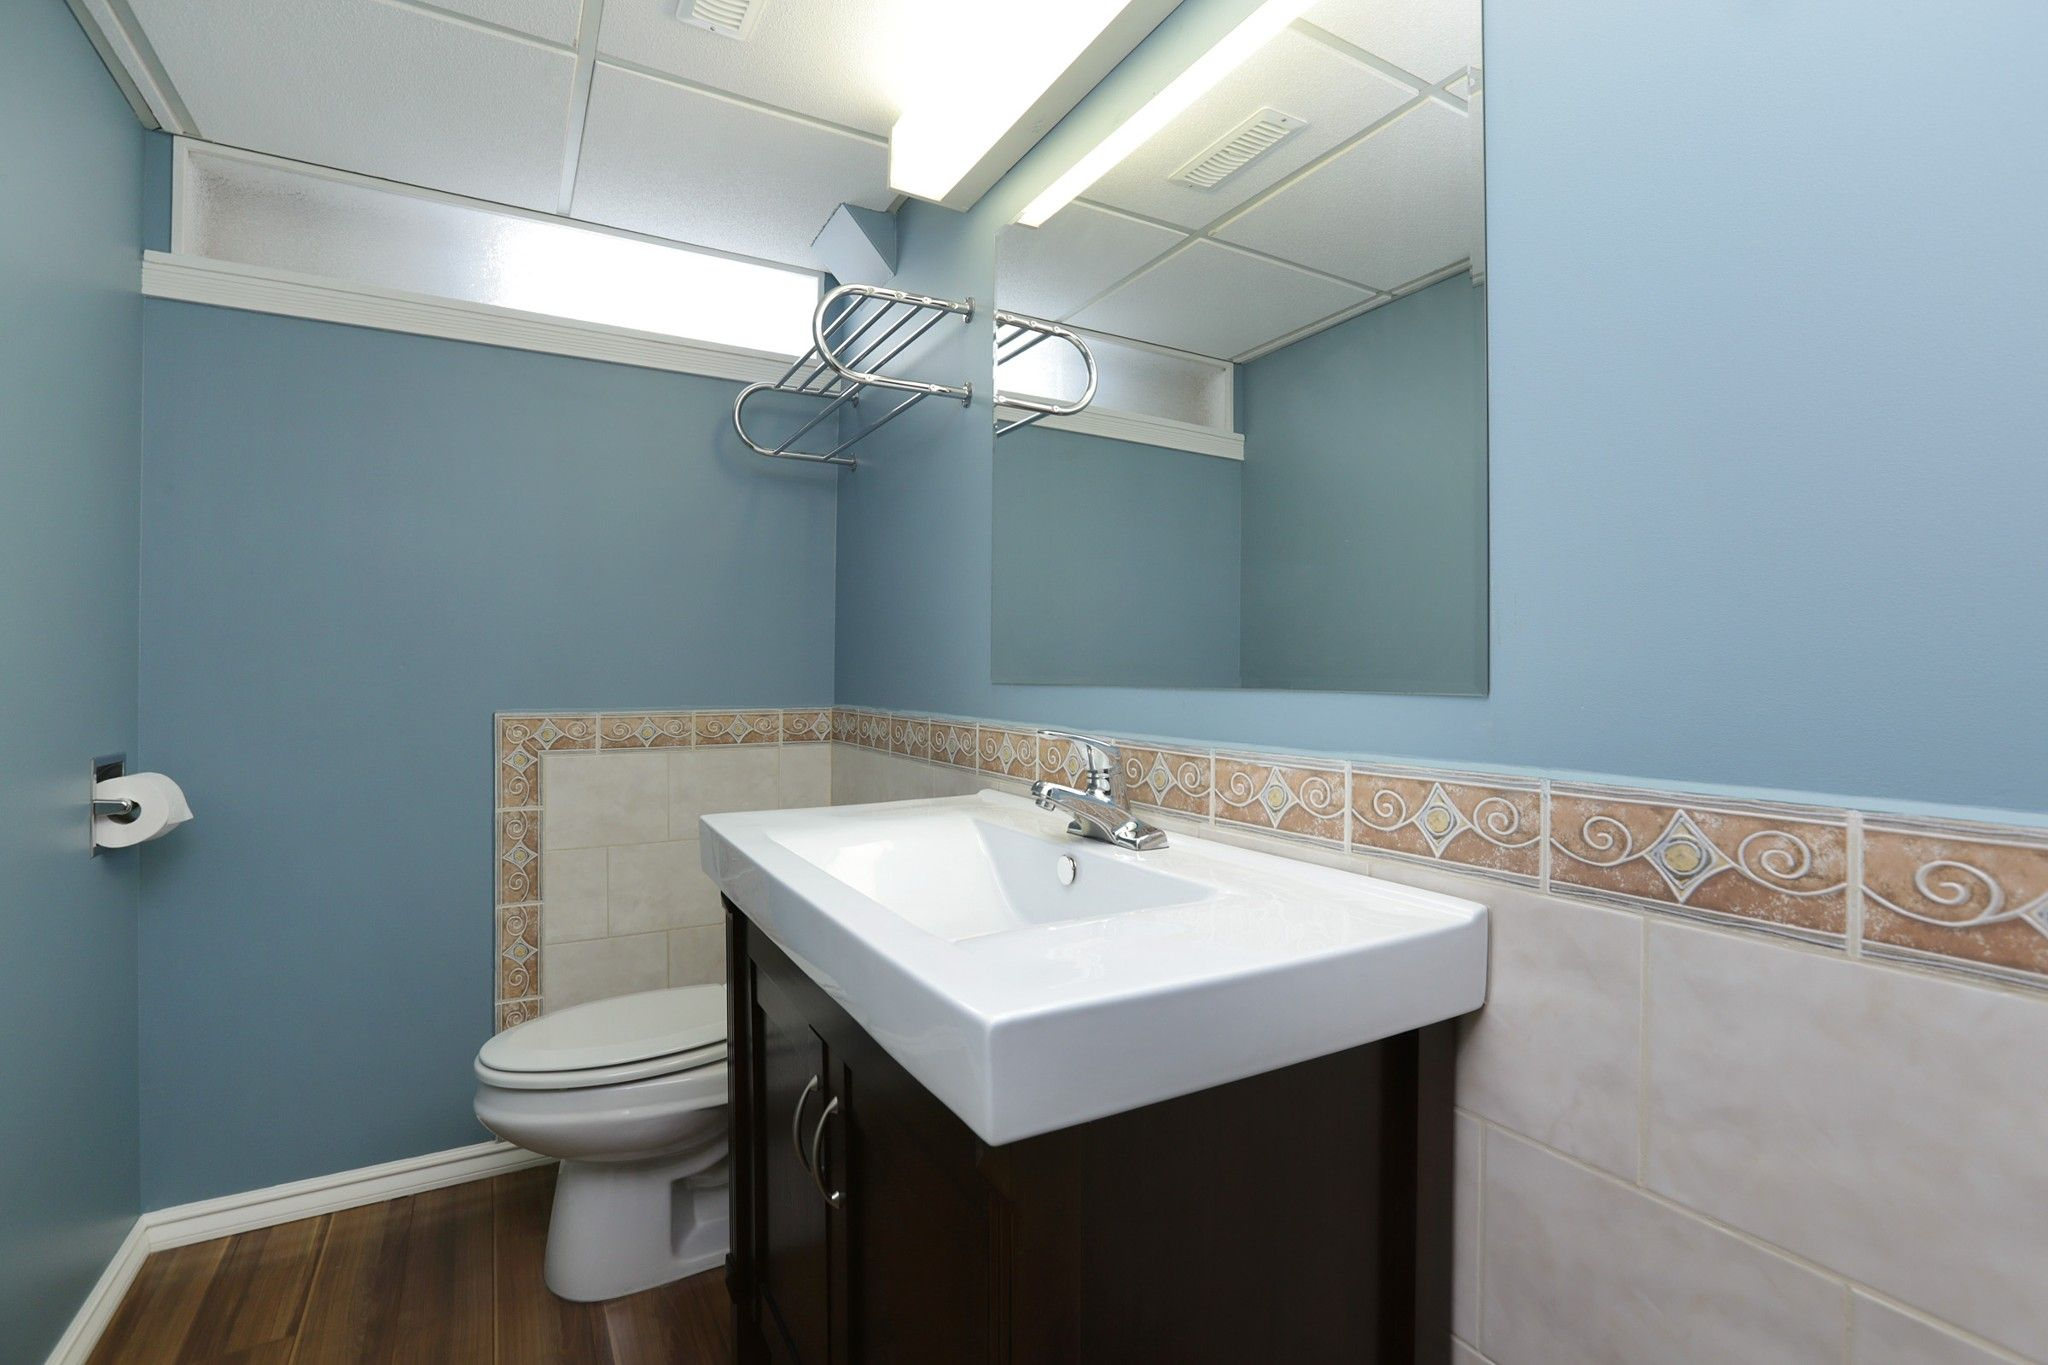 Photo 18: Photos: 372 VENTURA Crescent in North Vancouver: Upper Delbrook House for sale : MLS®# R2284717